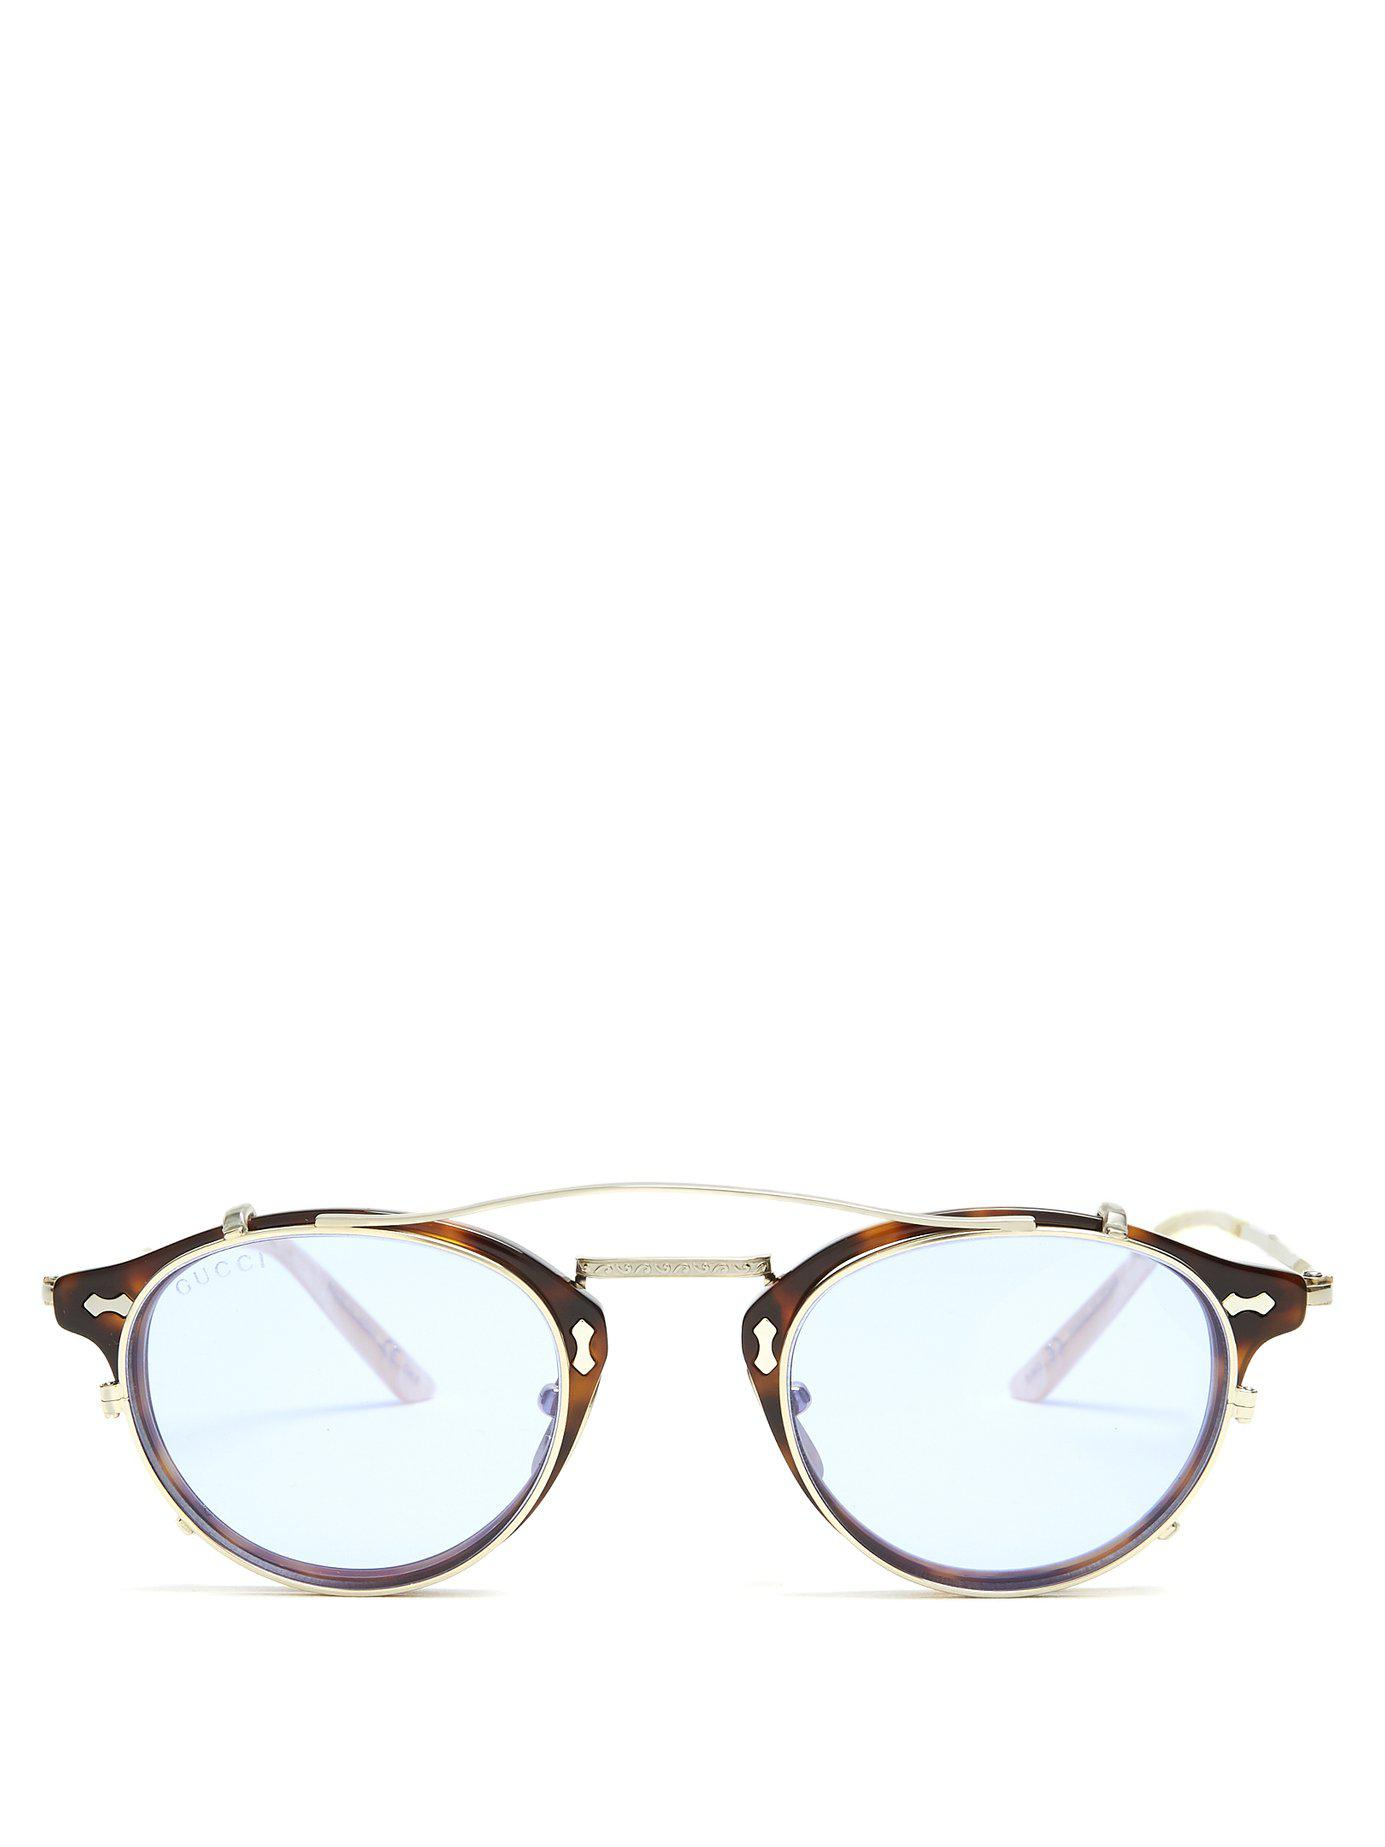 5278f3181c9 Lyst - Gucci Detachable Lens Round Frame Acetate Sunglasses in Brown ...